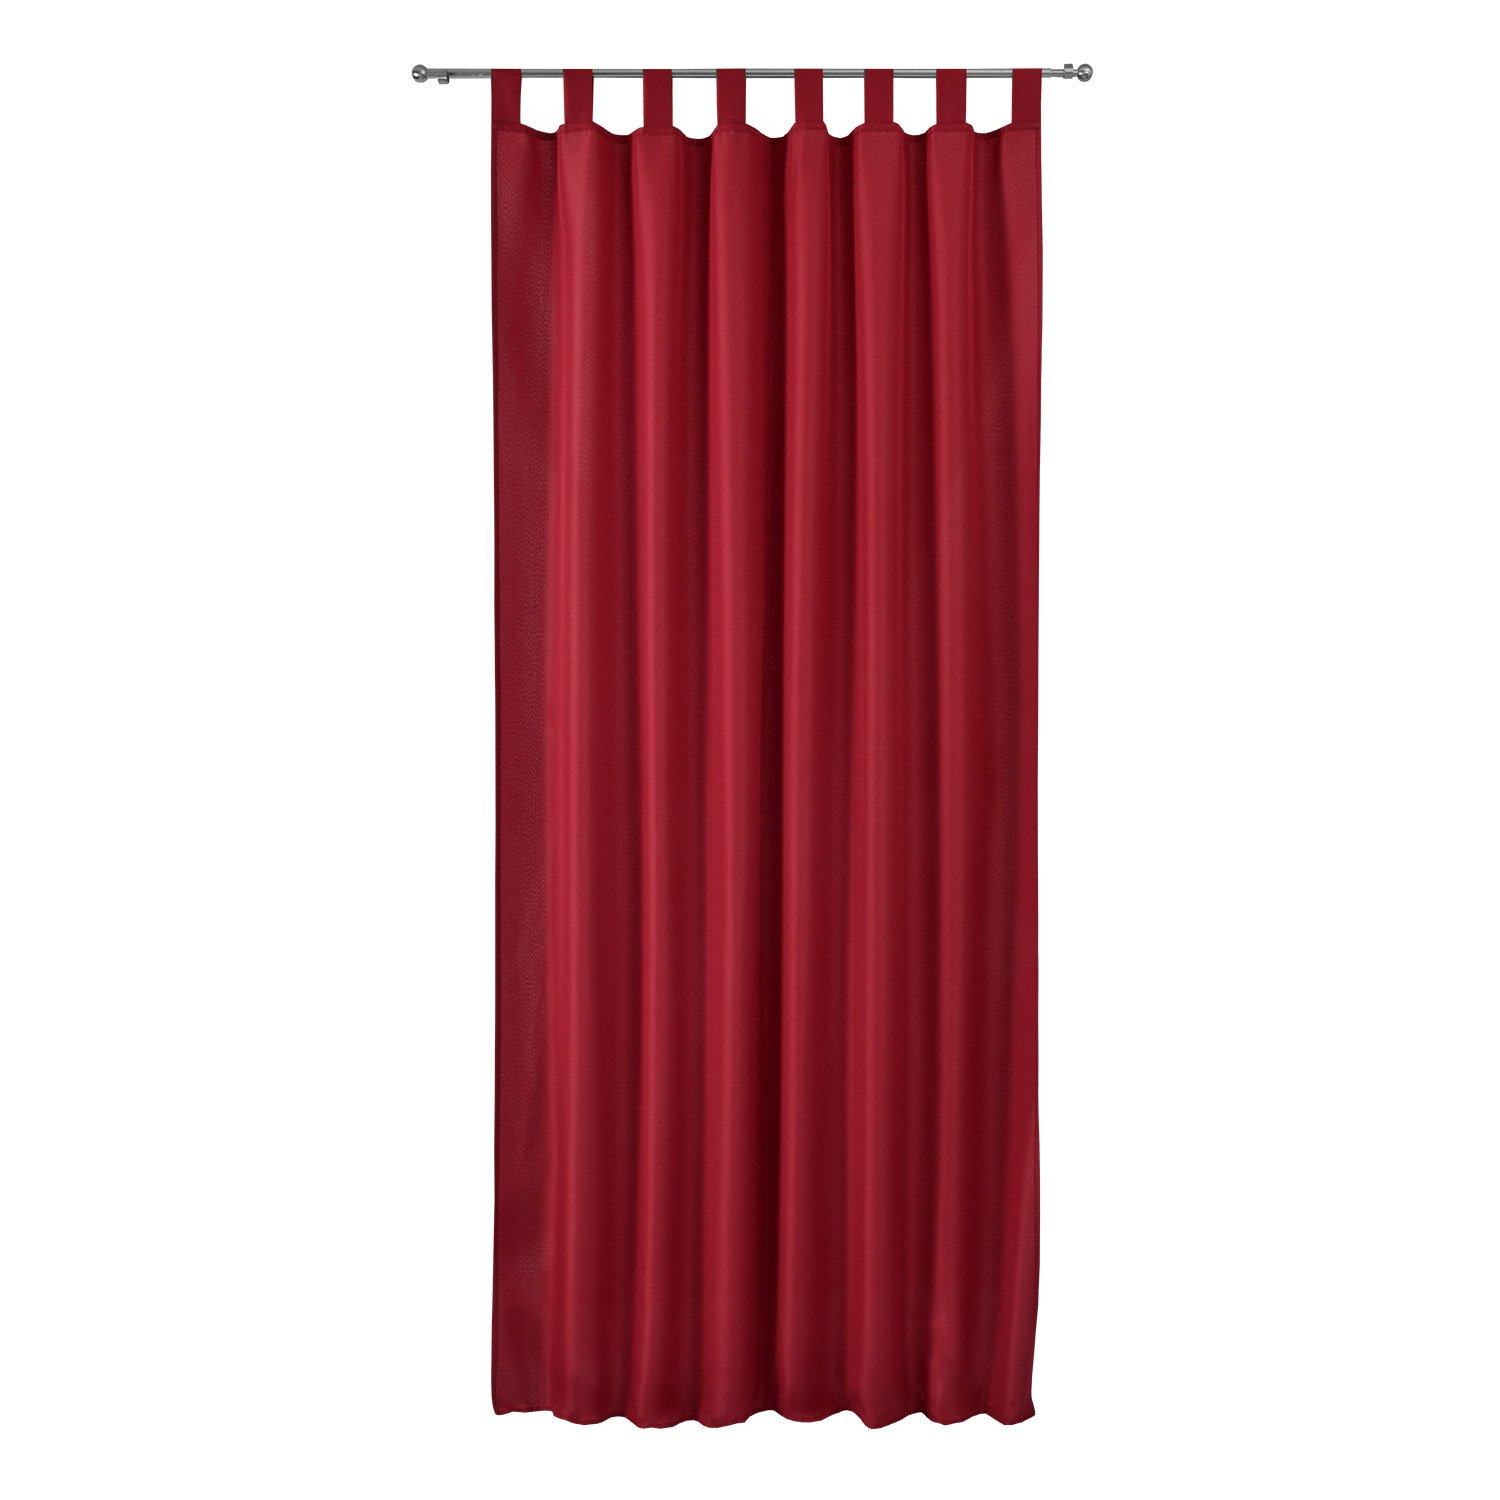 Beautissu Opaque Loop-Curtain Amelie 140 cm 175 cm Drop Black Decorative Drape Loop-Curtain Window-Scarf